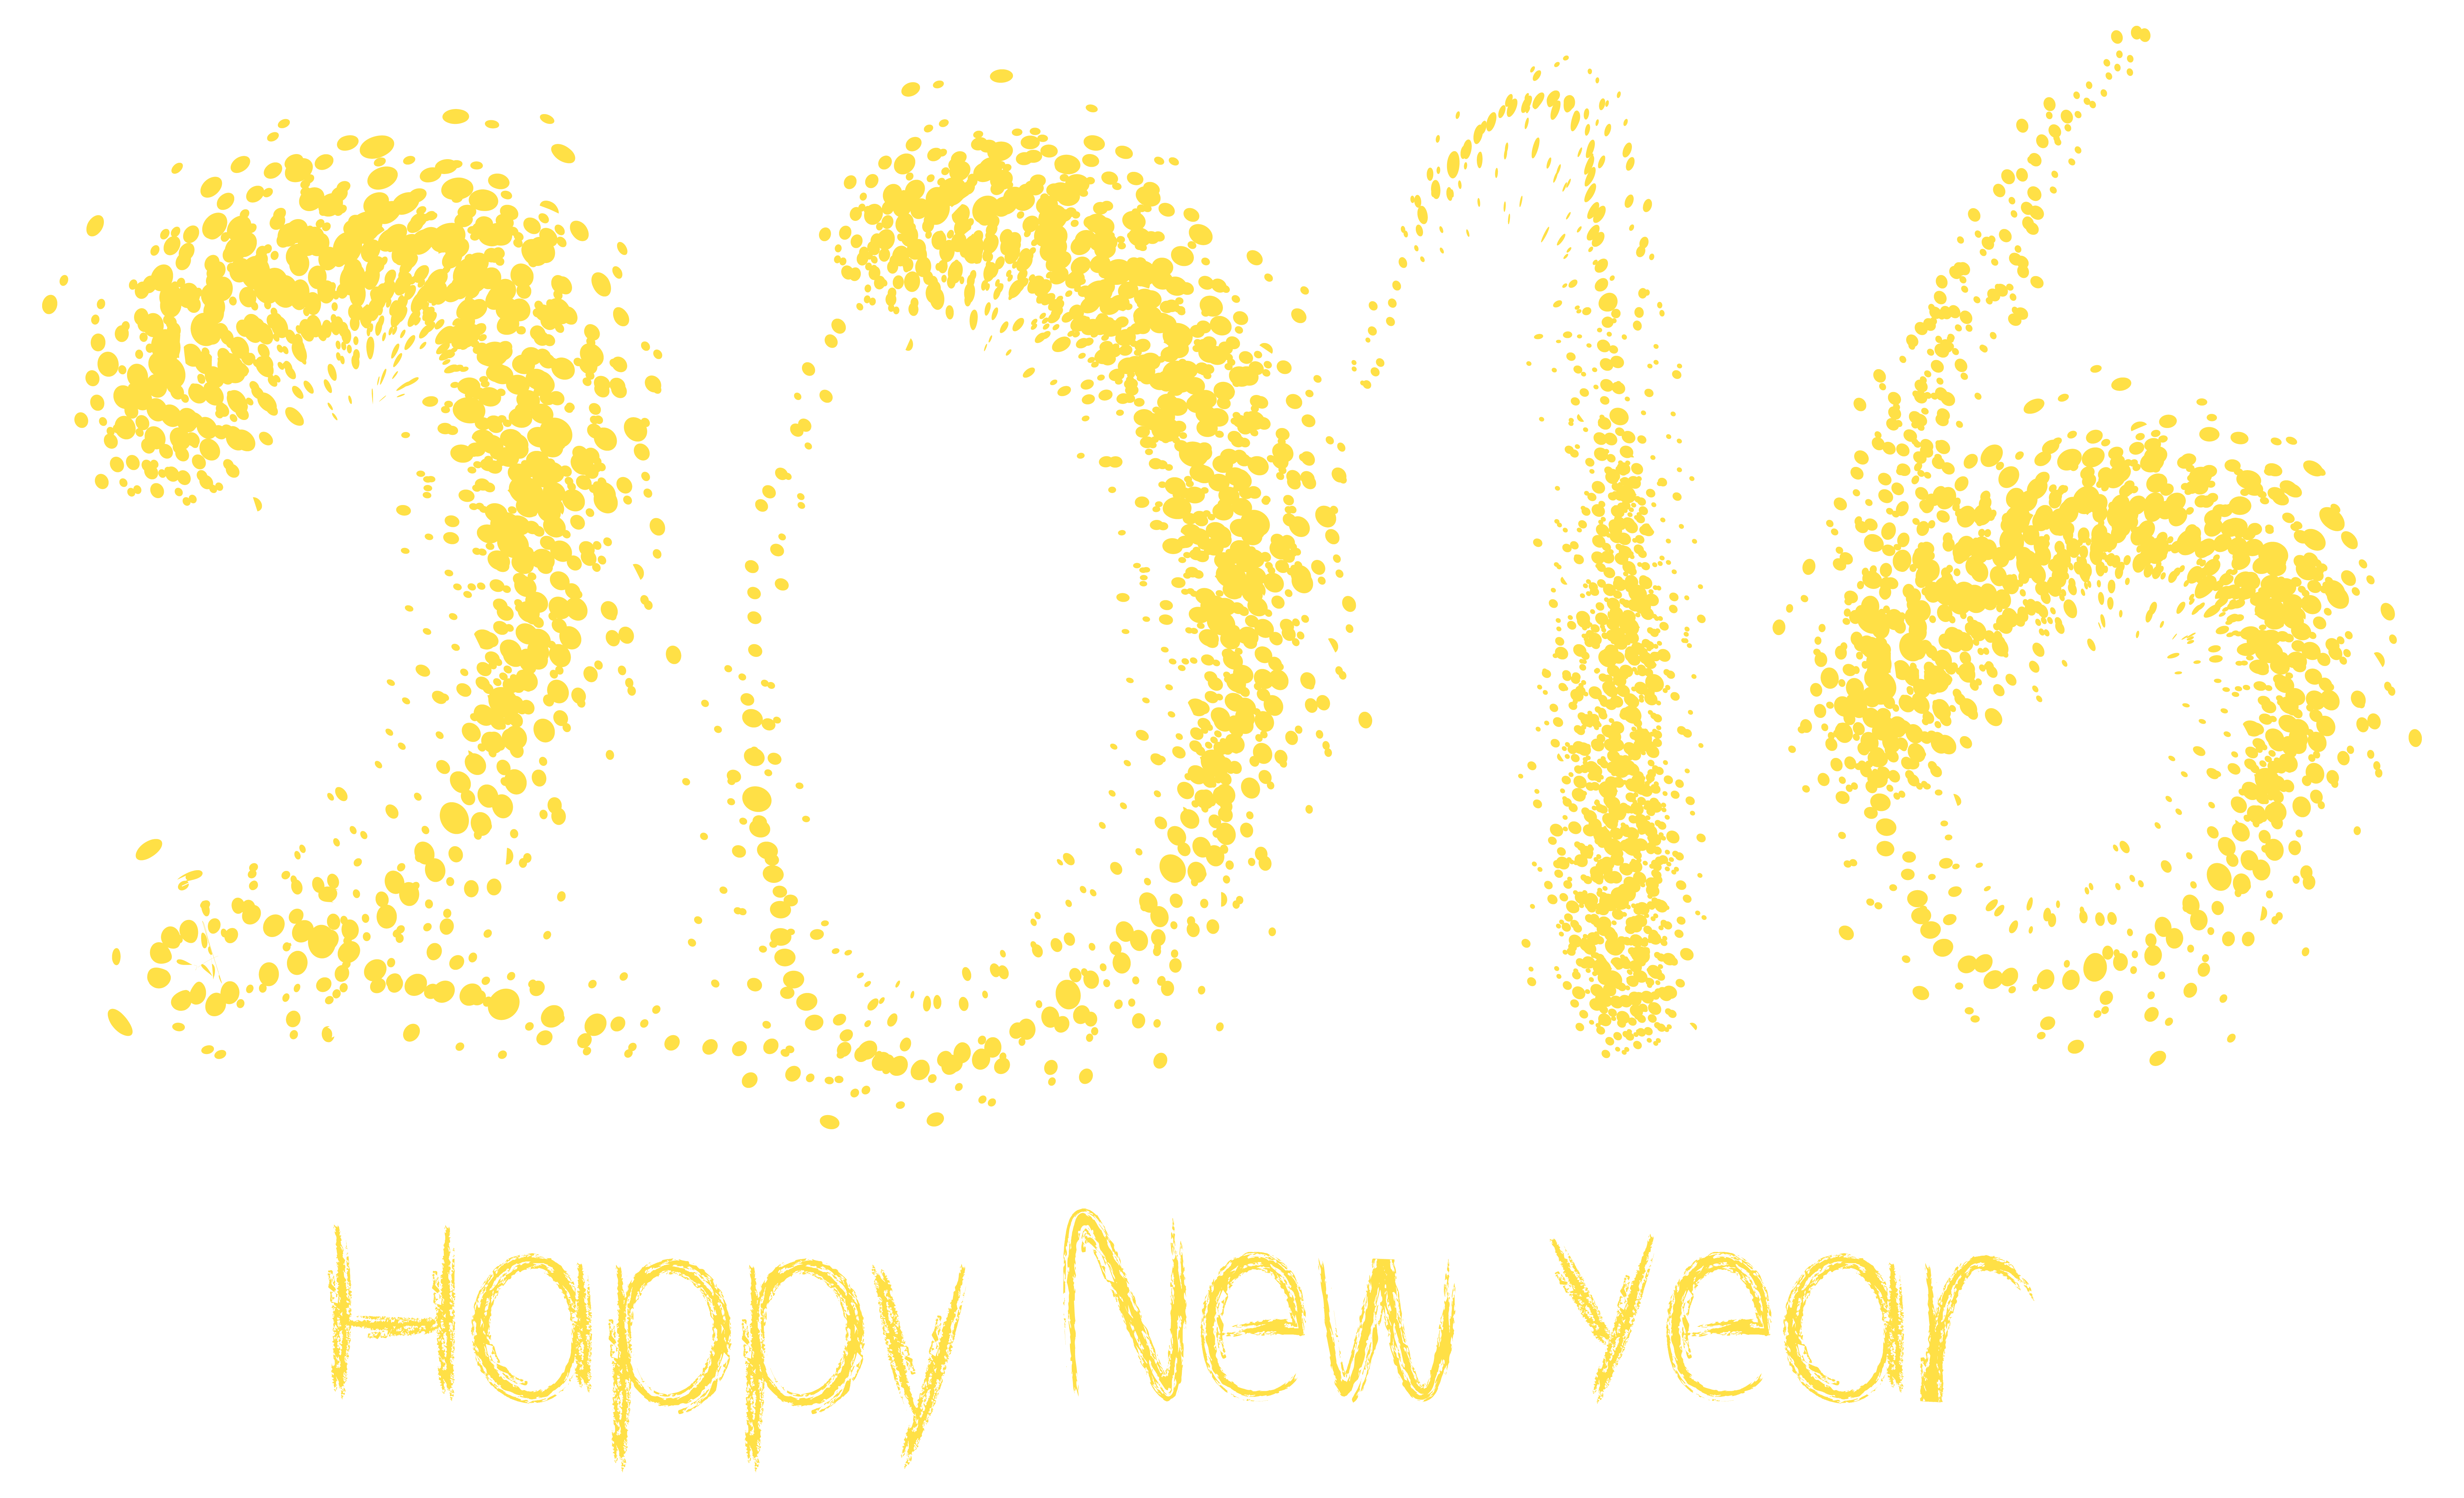 Happy new year 2016 png. Clipart image gallery